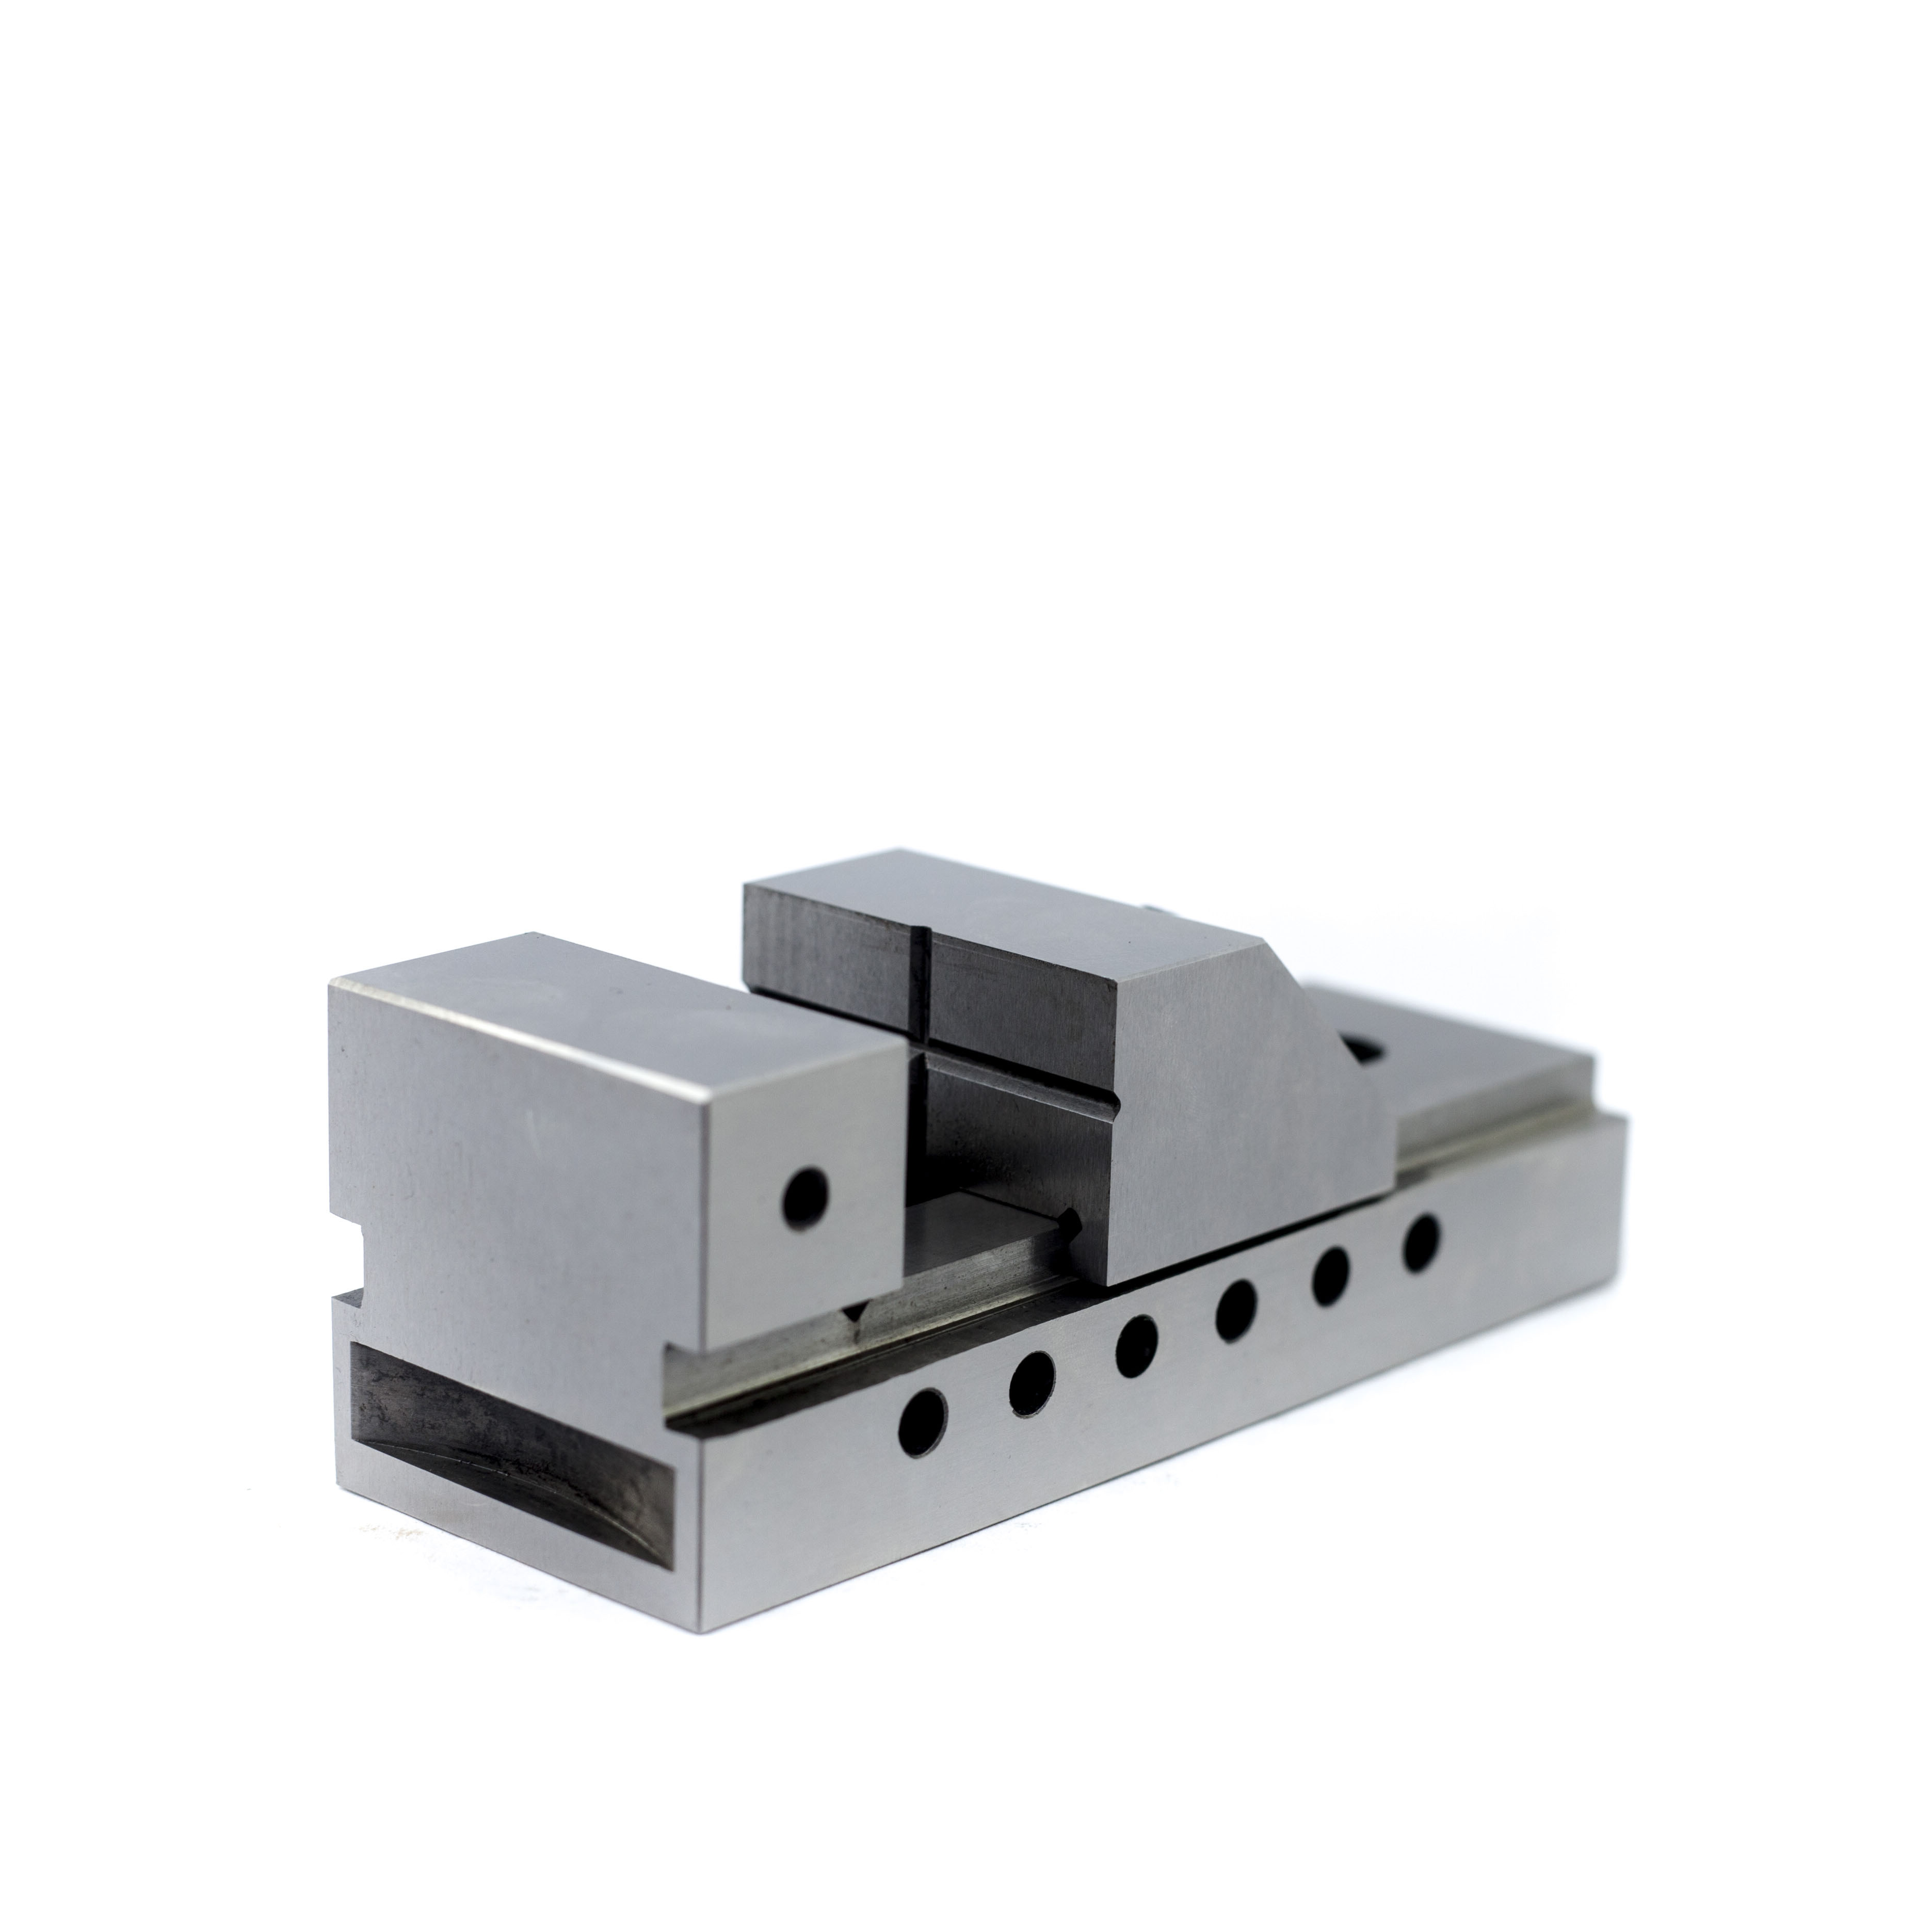 "PIN TYPE PRECISE QUALITY 3/"" INCH TOOLMAKER PRECISION GRINDING VISE SCREWLESS"